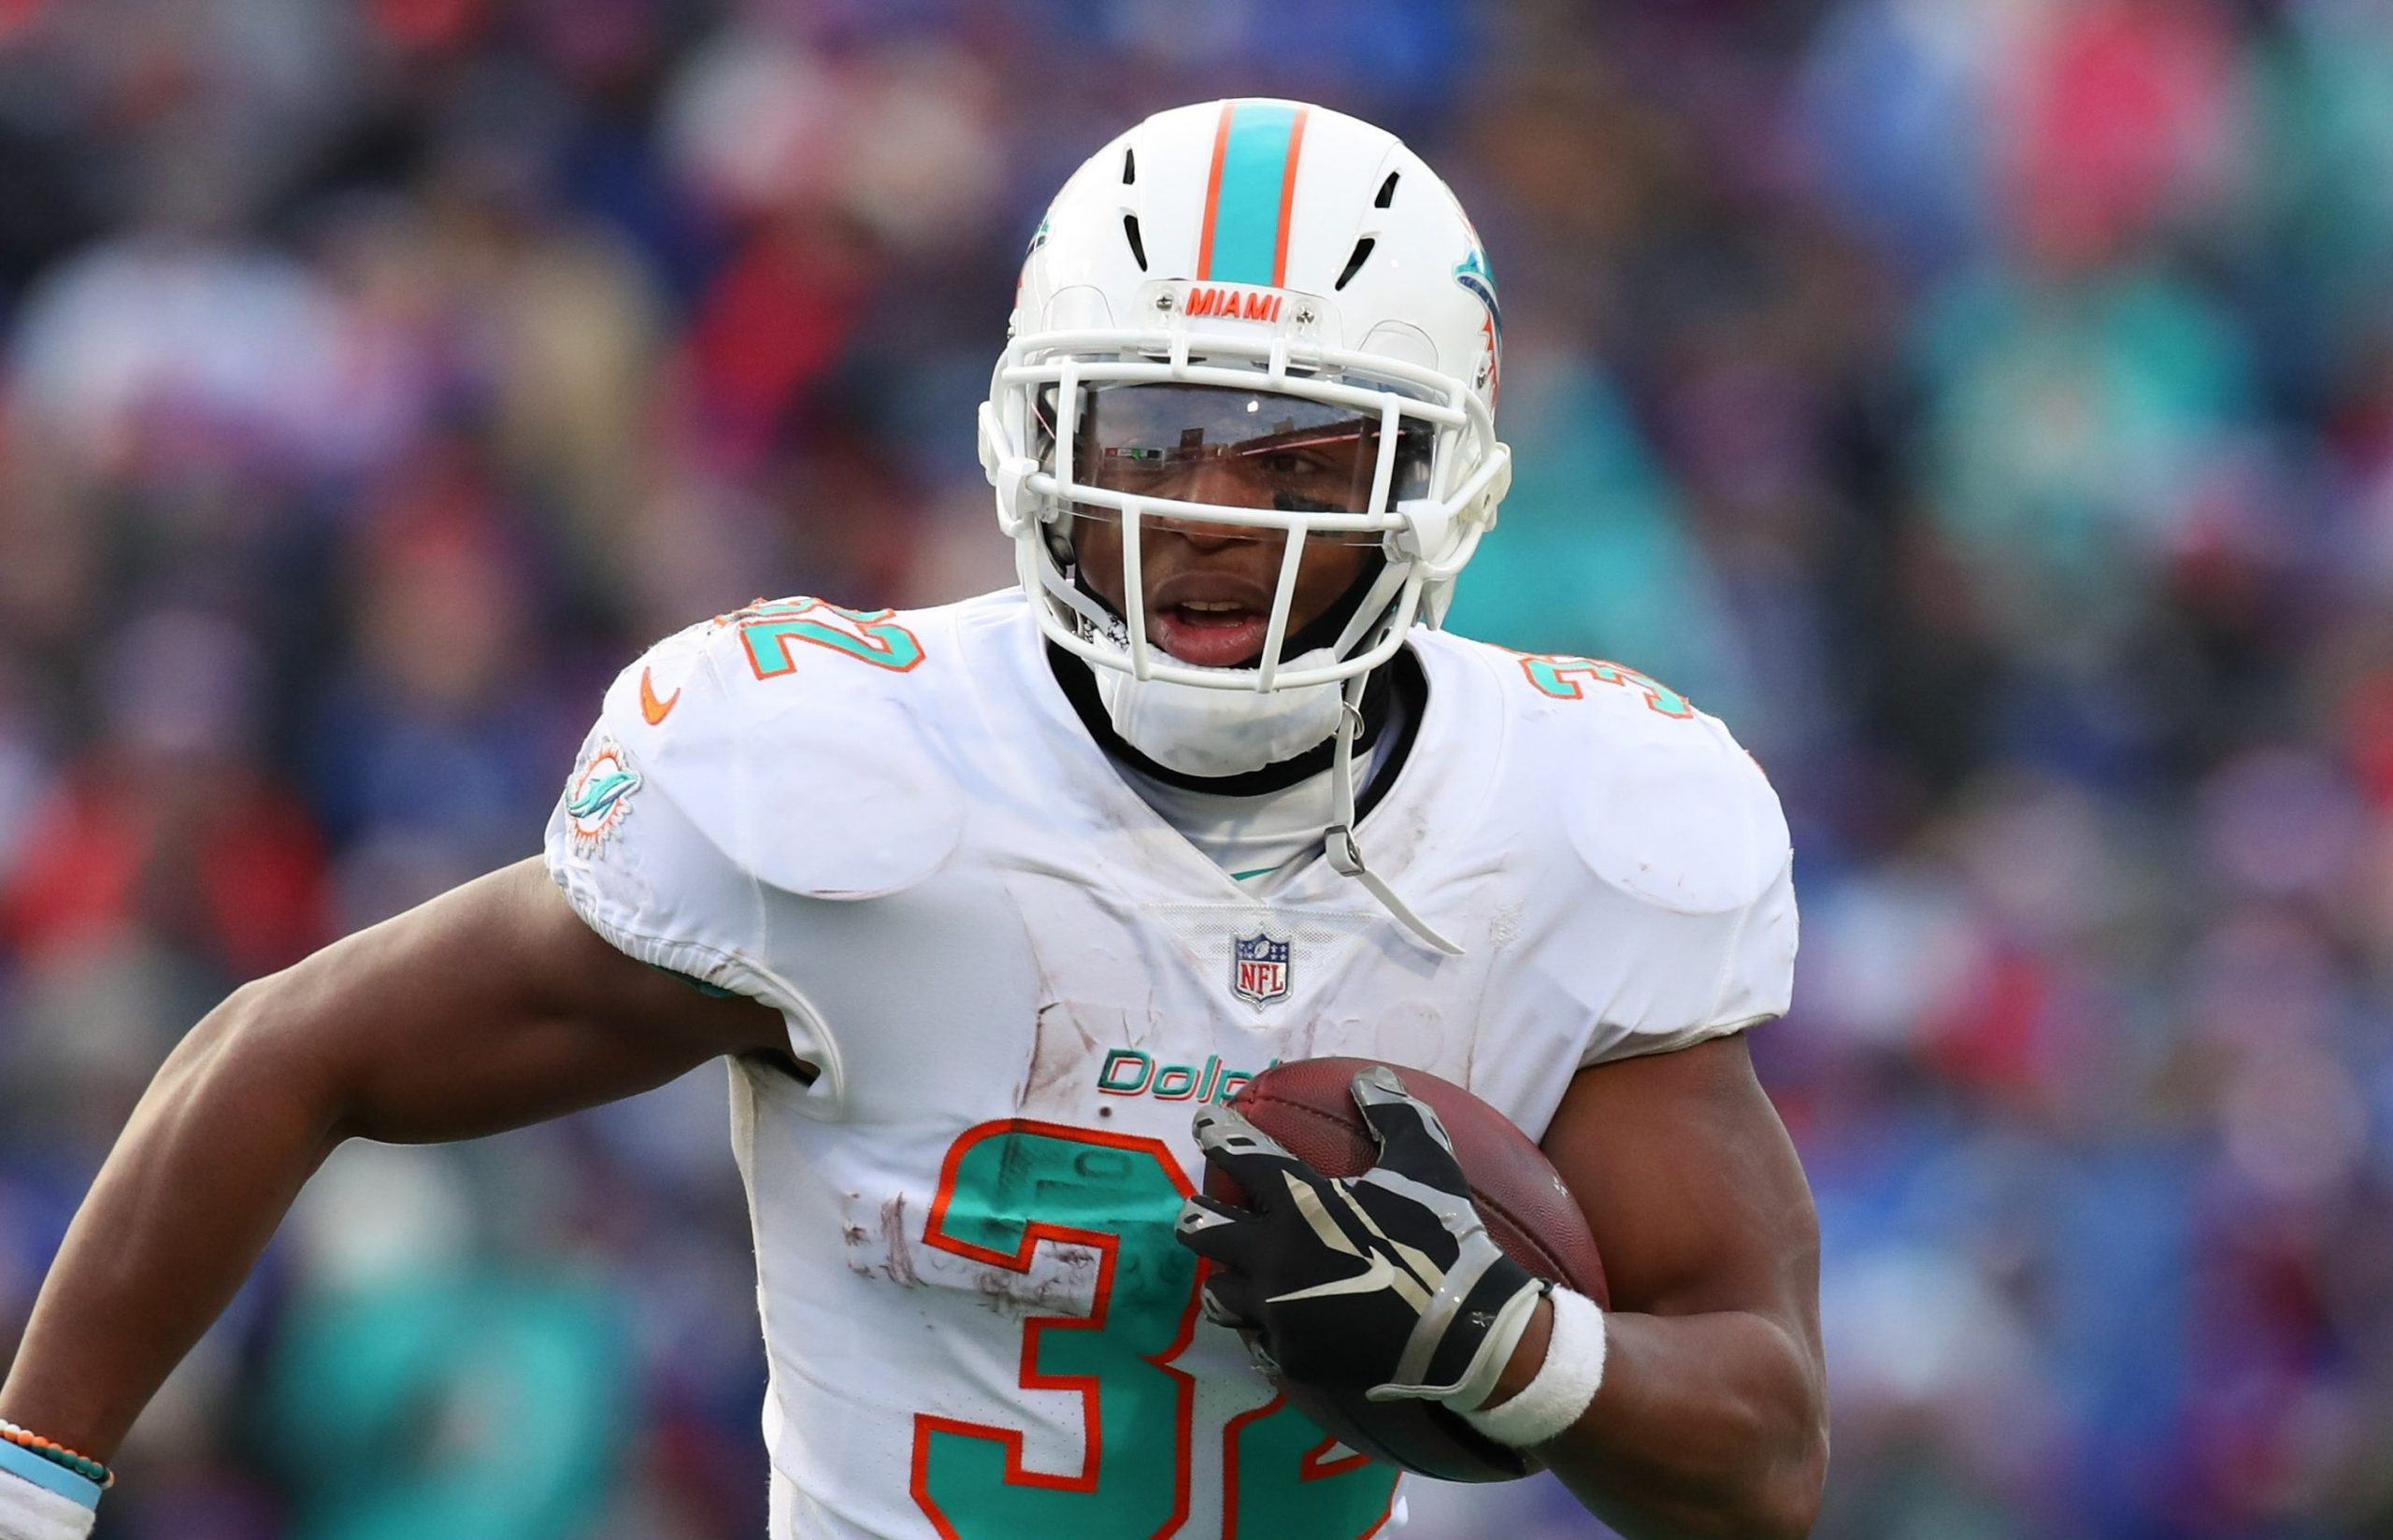 What Are The Miami Dolphins Odds Of Winning Super Bowl Liv? for Miami Dolphins Super Bowl Odds 2019